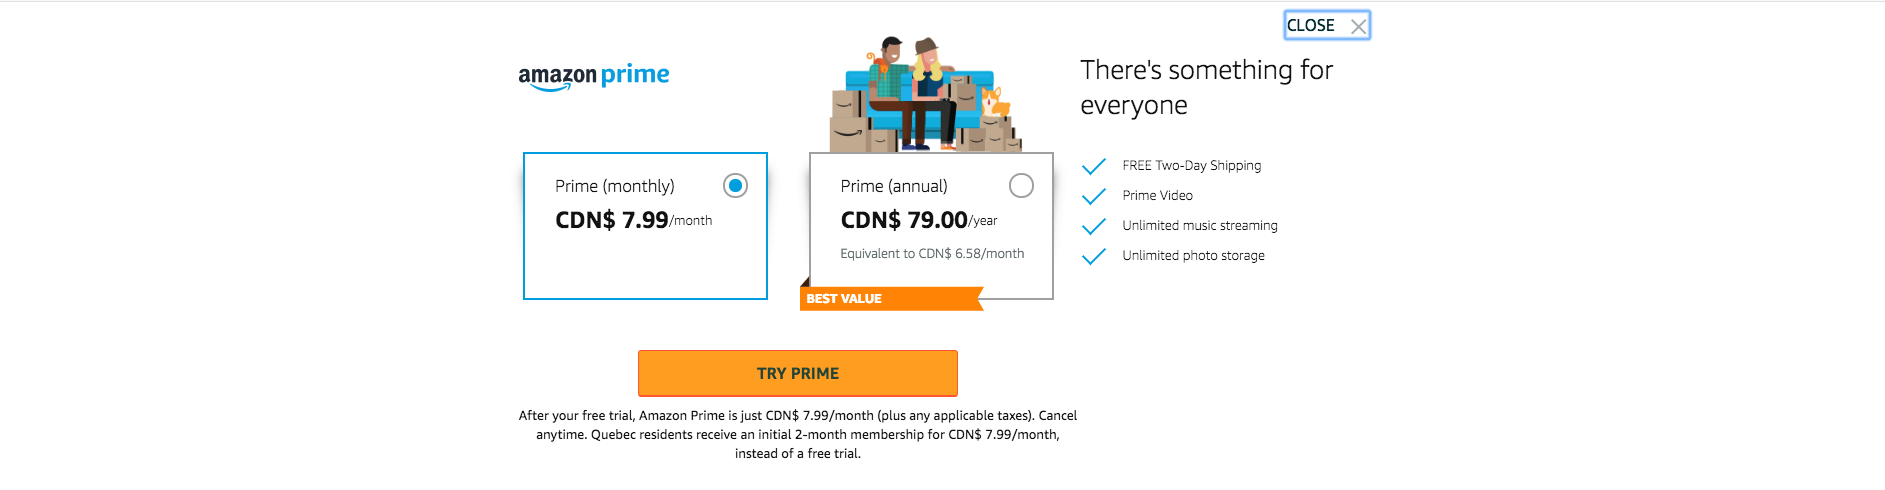 Amazon Prime Canada - Pricing Plans.png